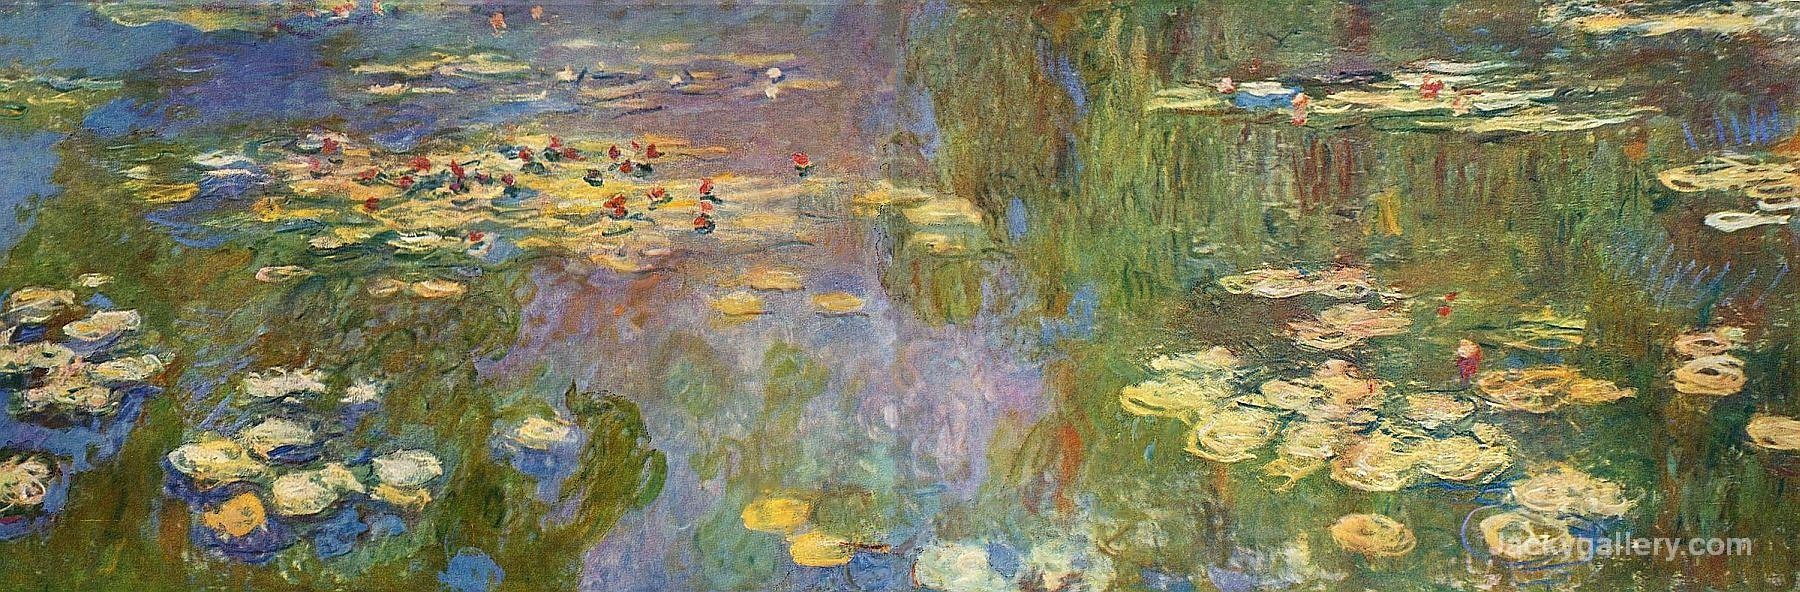 Water Lilies VII by Claude Monet paintings reproduction